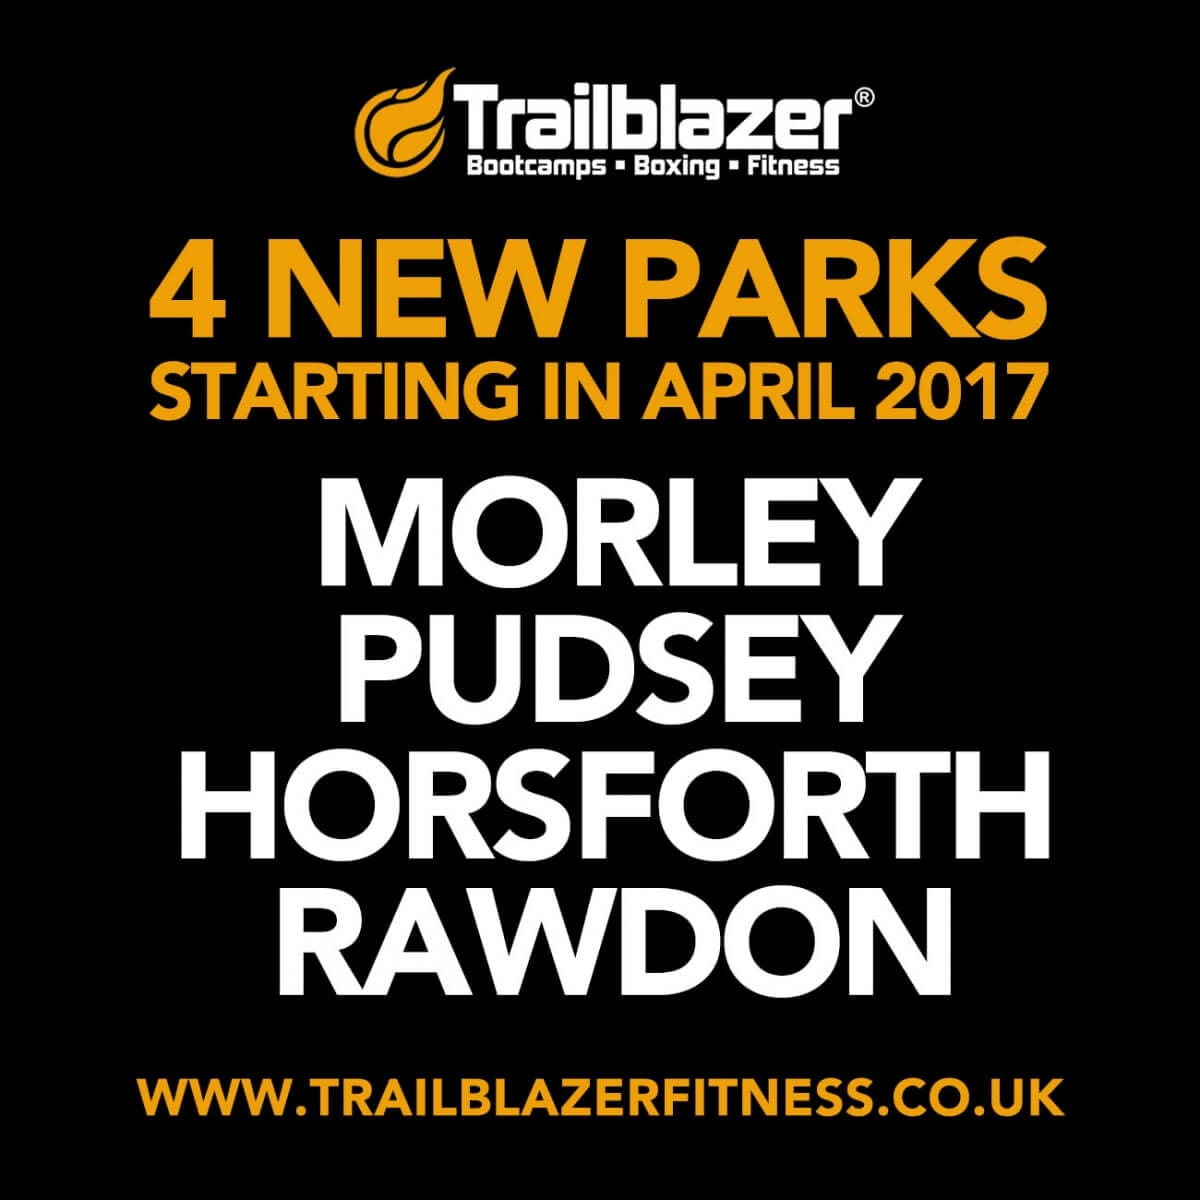 4 new parks added in April 2017